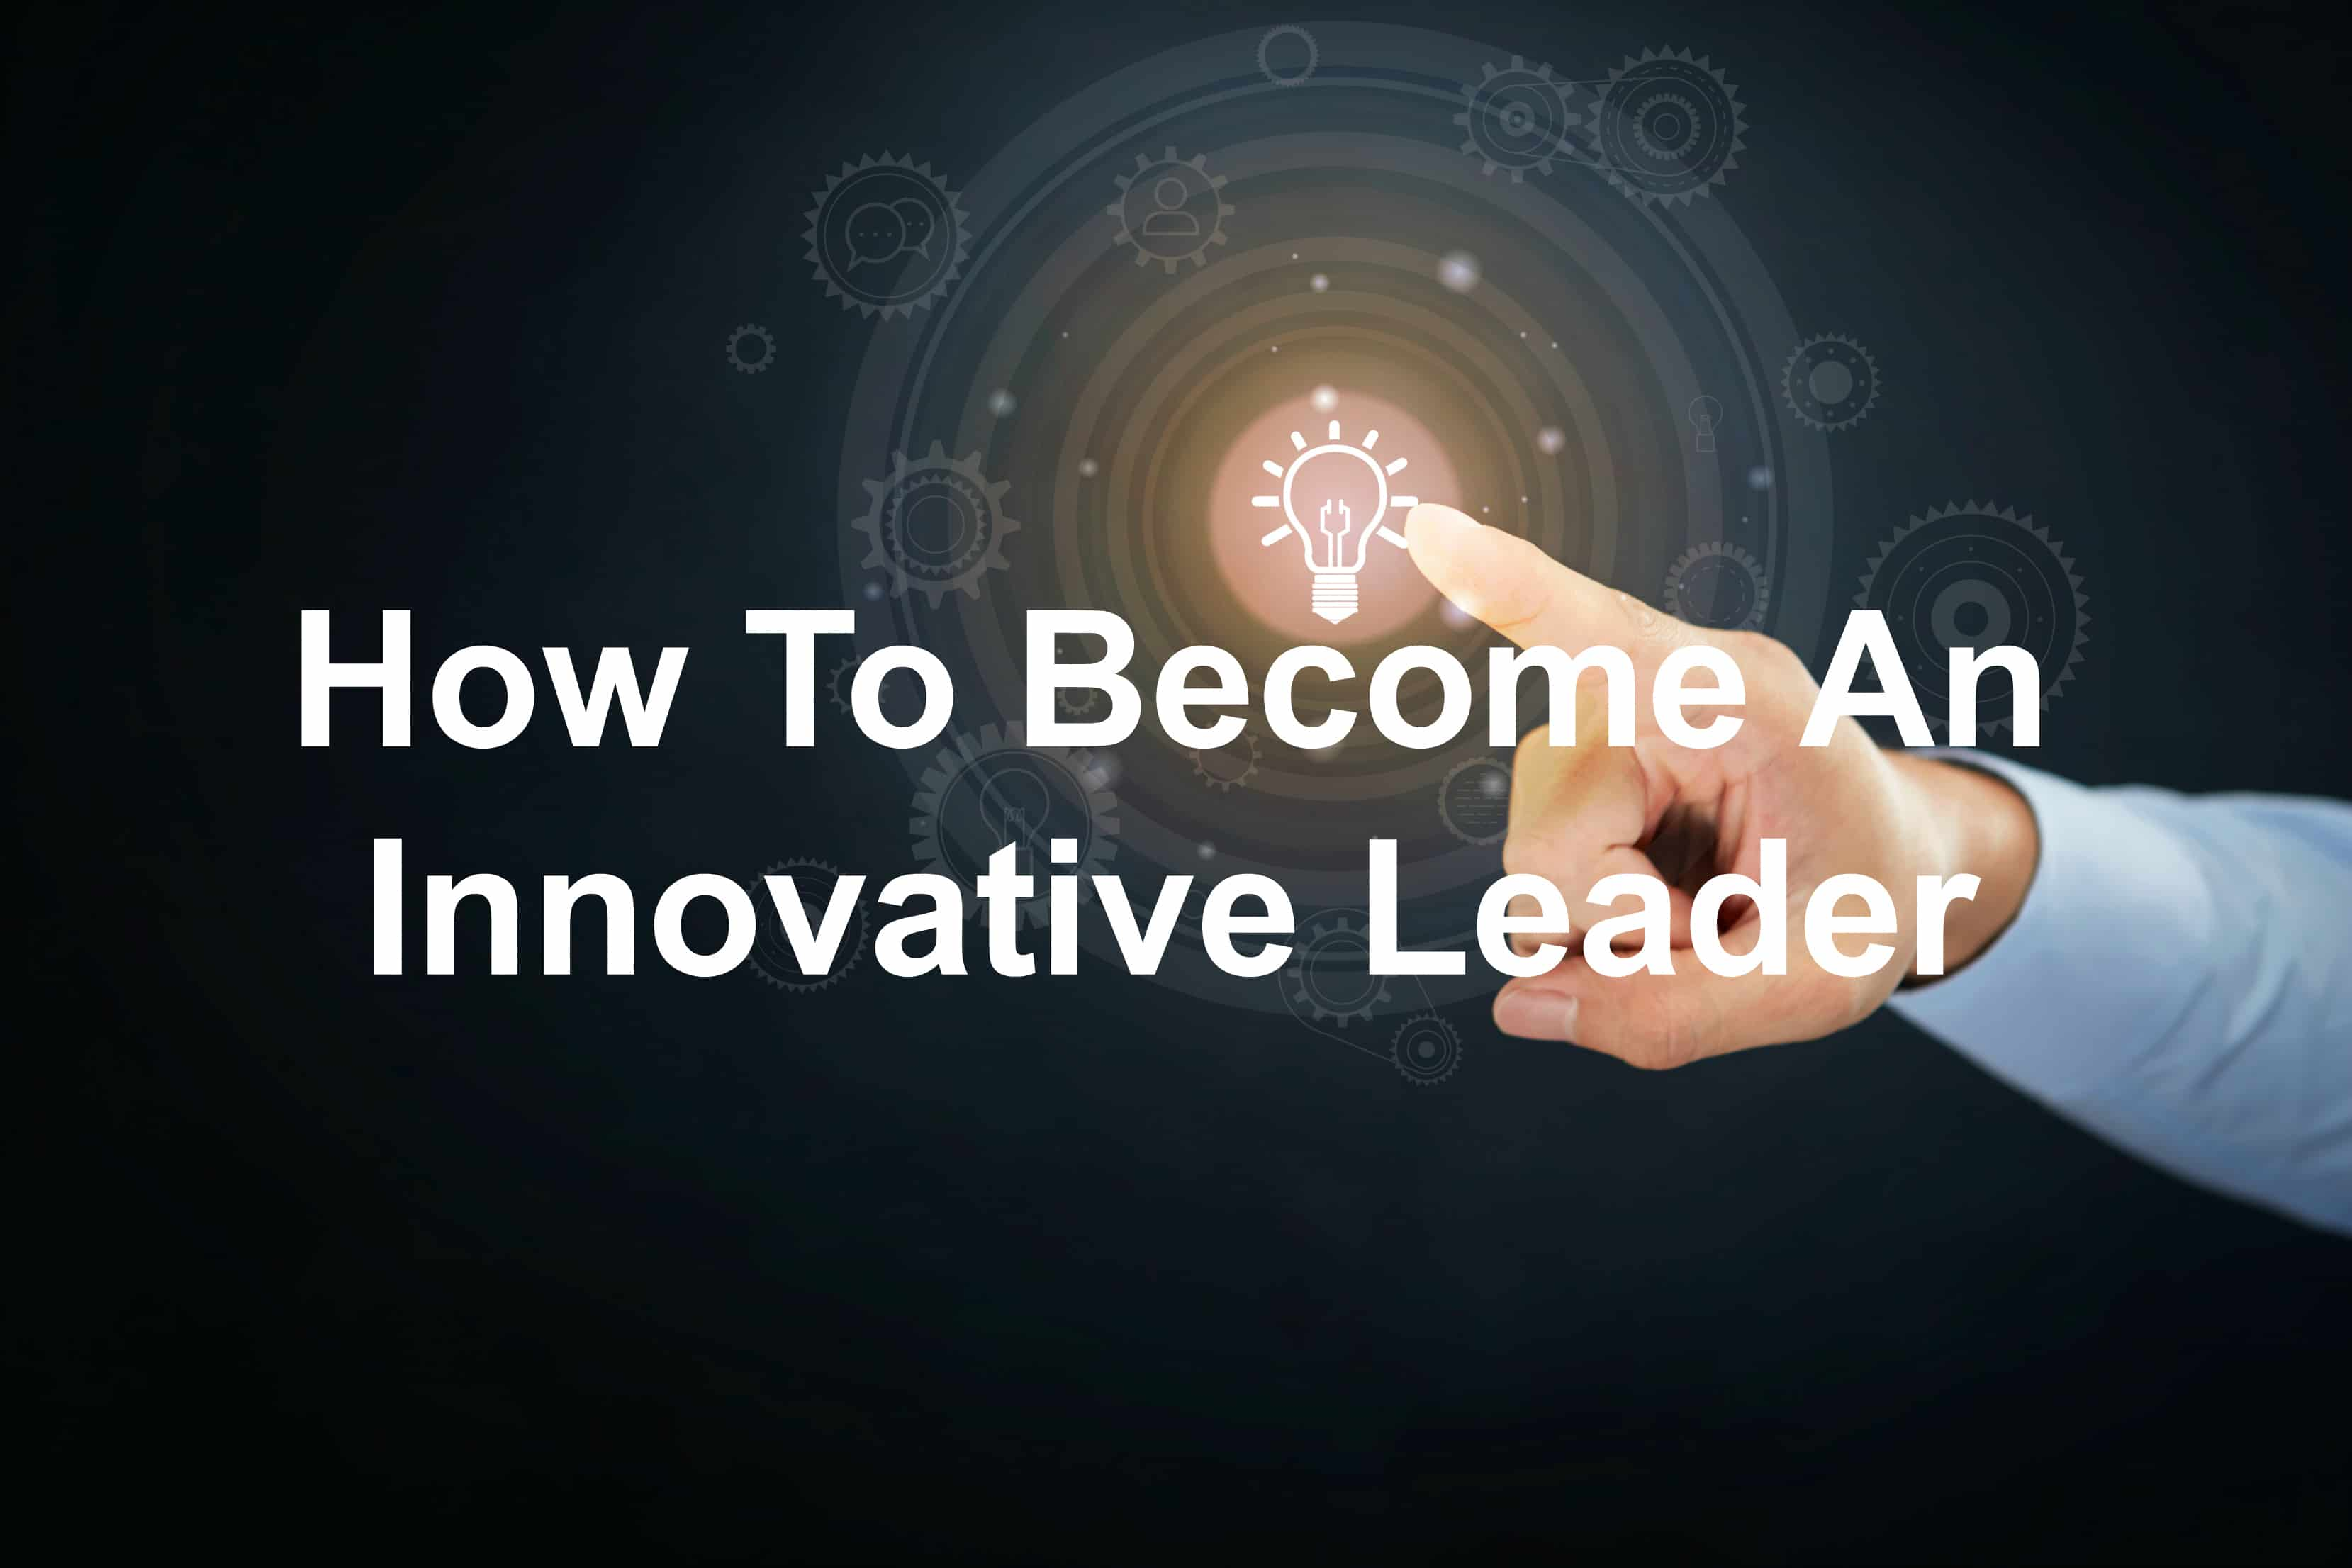 Innovative leadership is great leadership